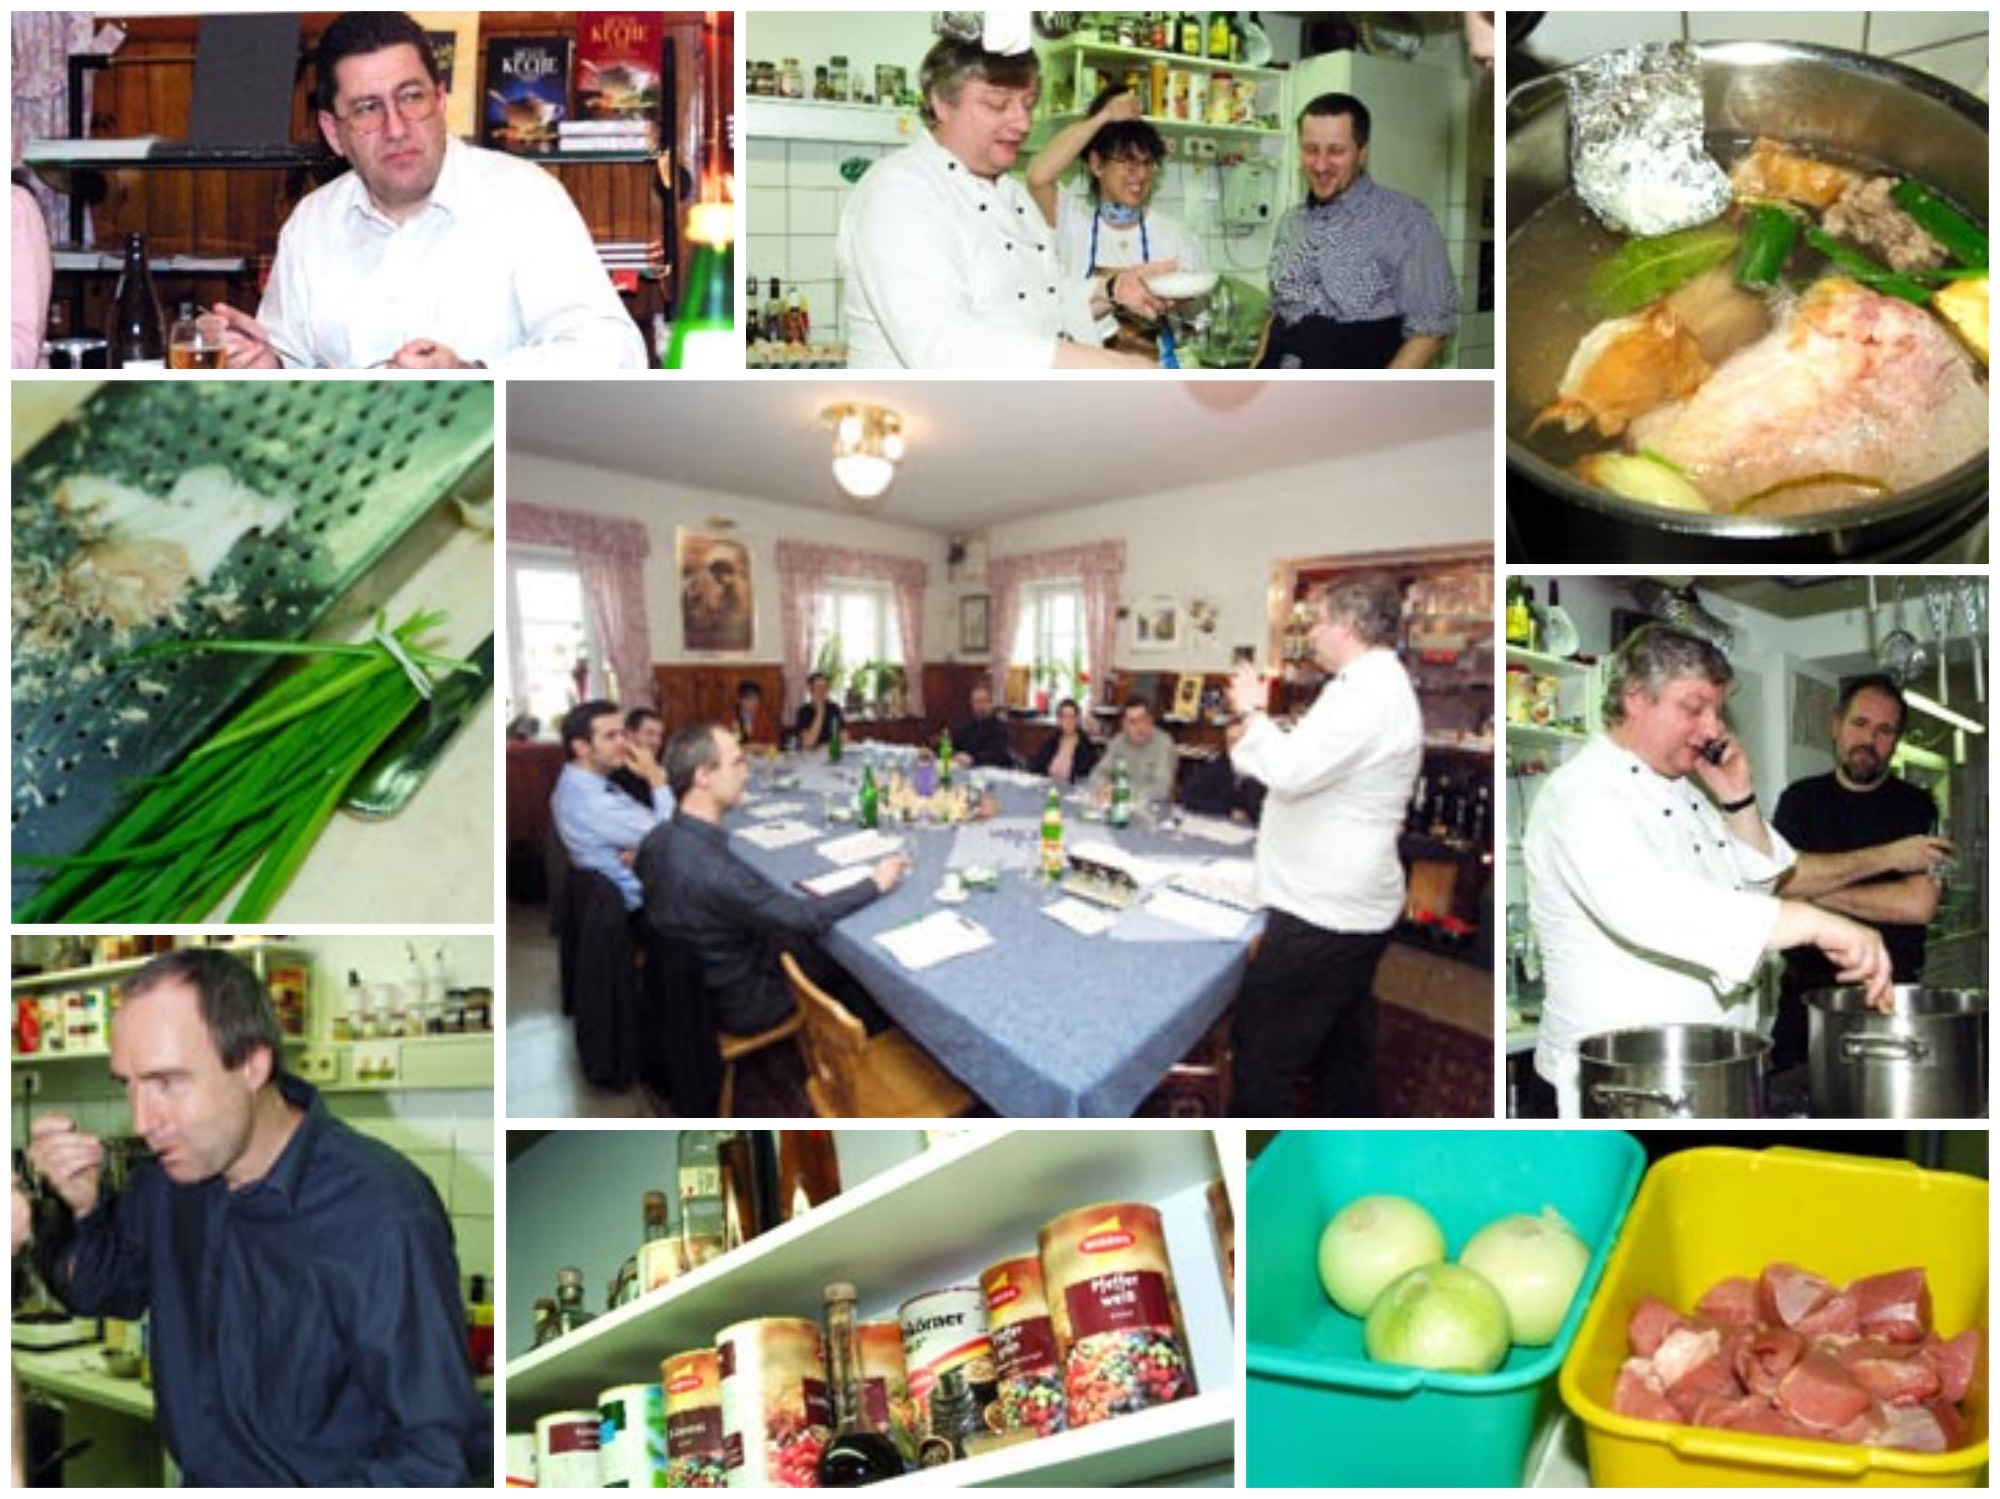 Collage-Cooking-1.jpg